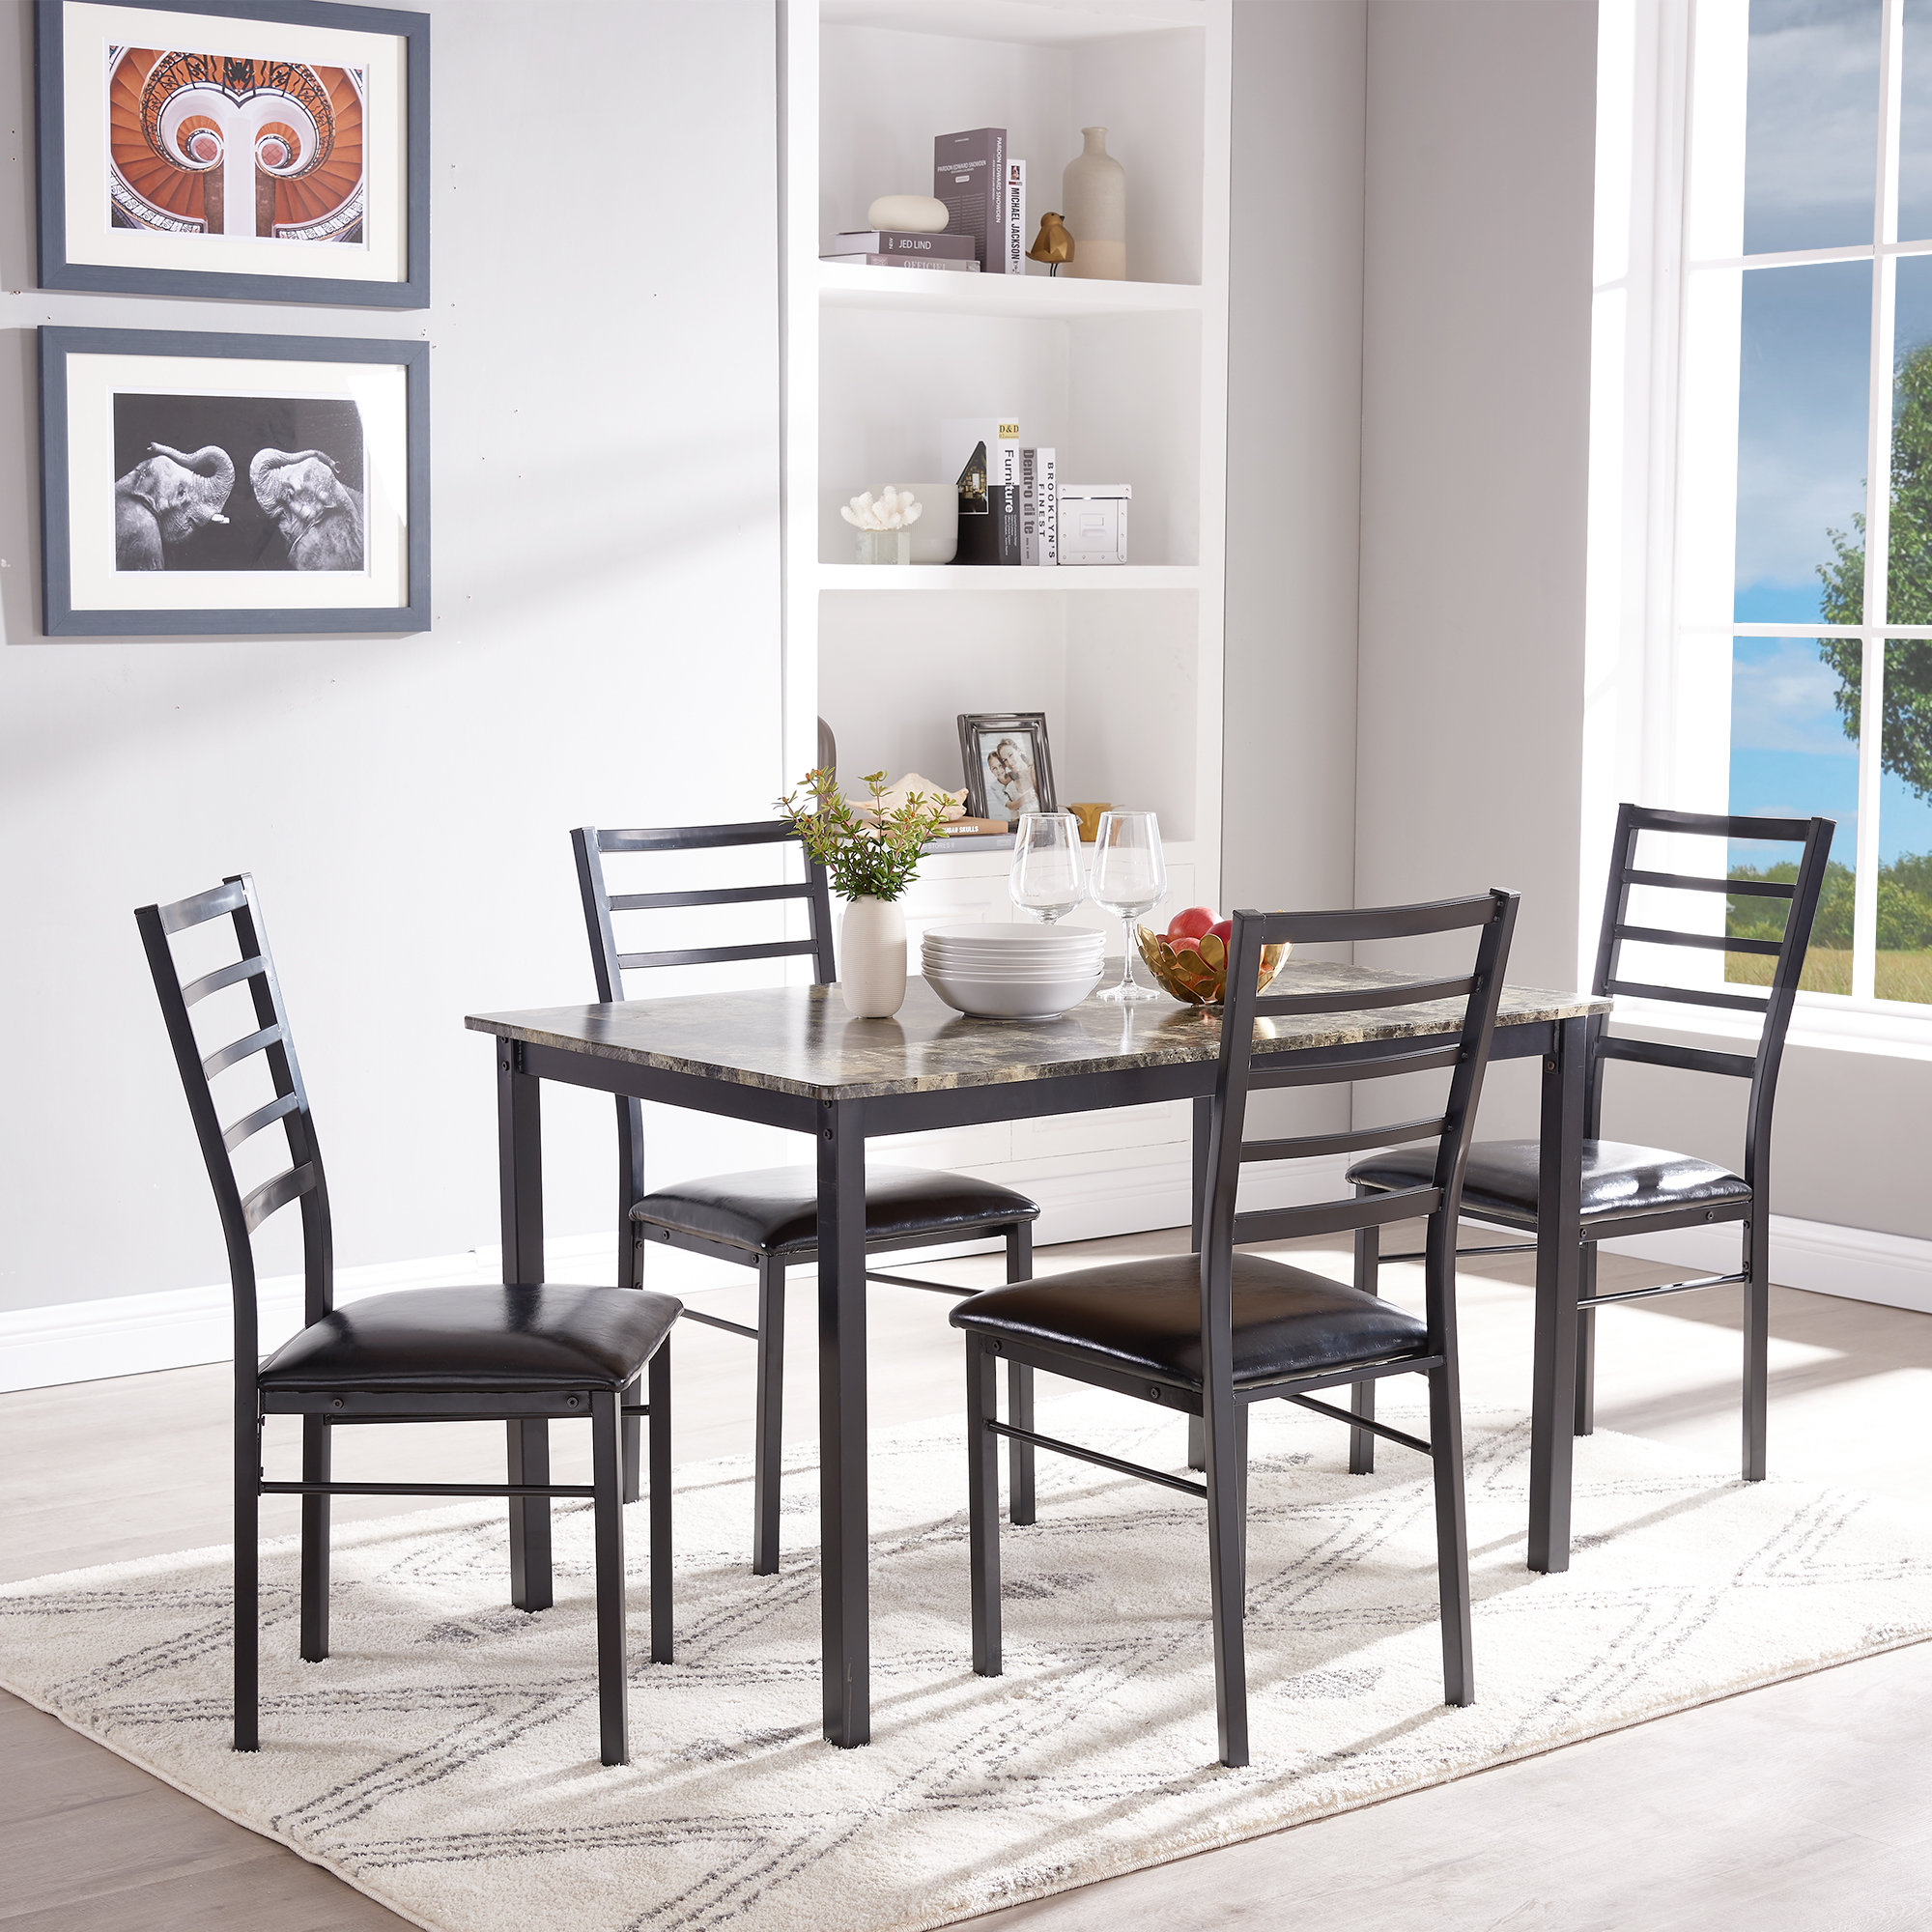 Details About Winston Porter Mukai 5 Piece Dining Set With Most Recent Tavarez 5 Piece Dining Sets (Photo 8 of 20)